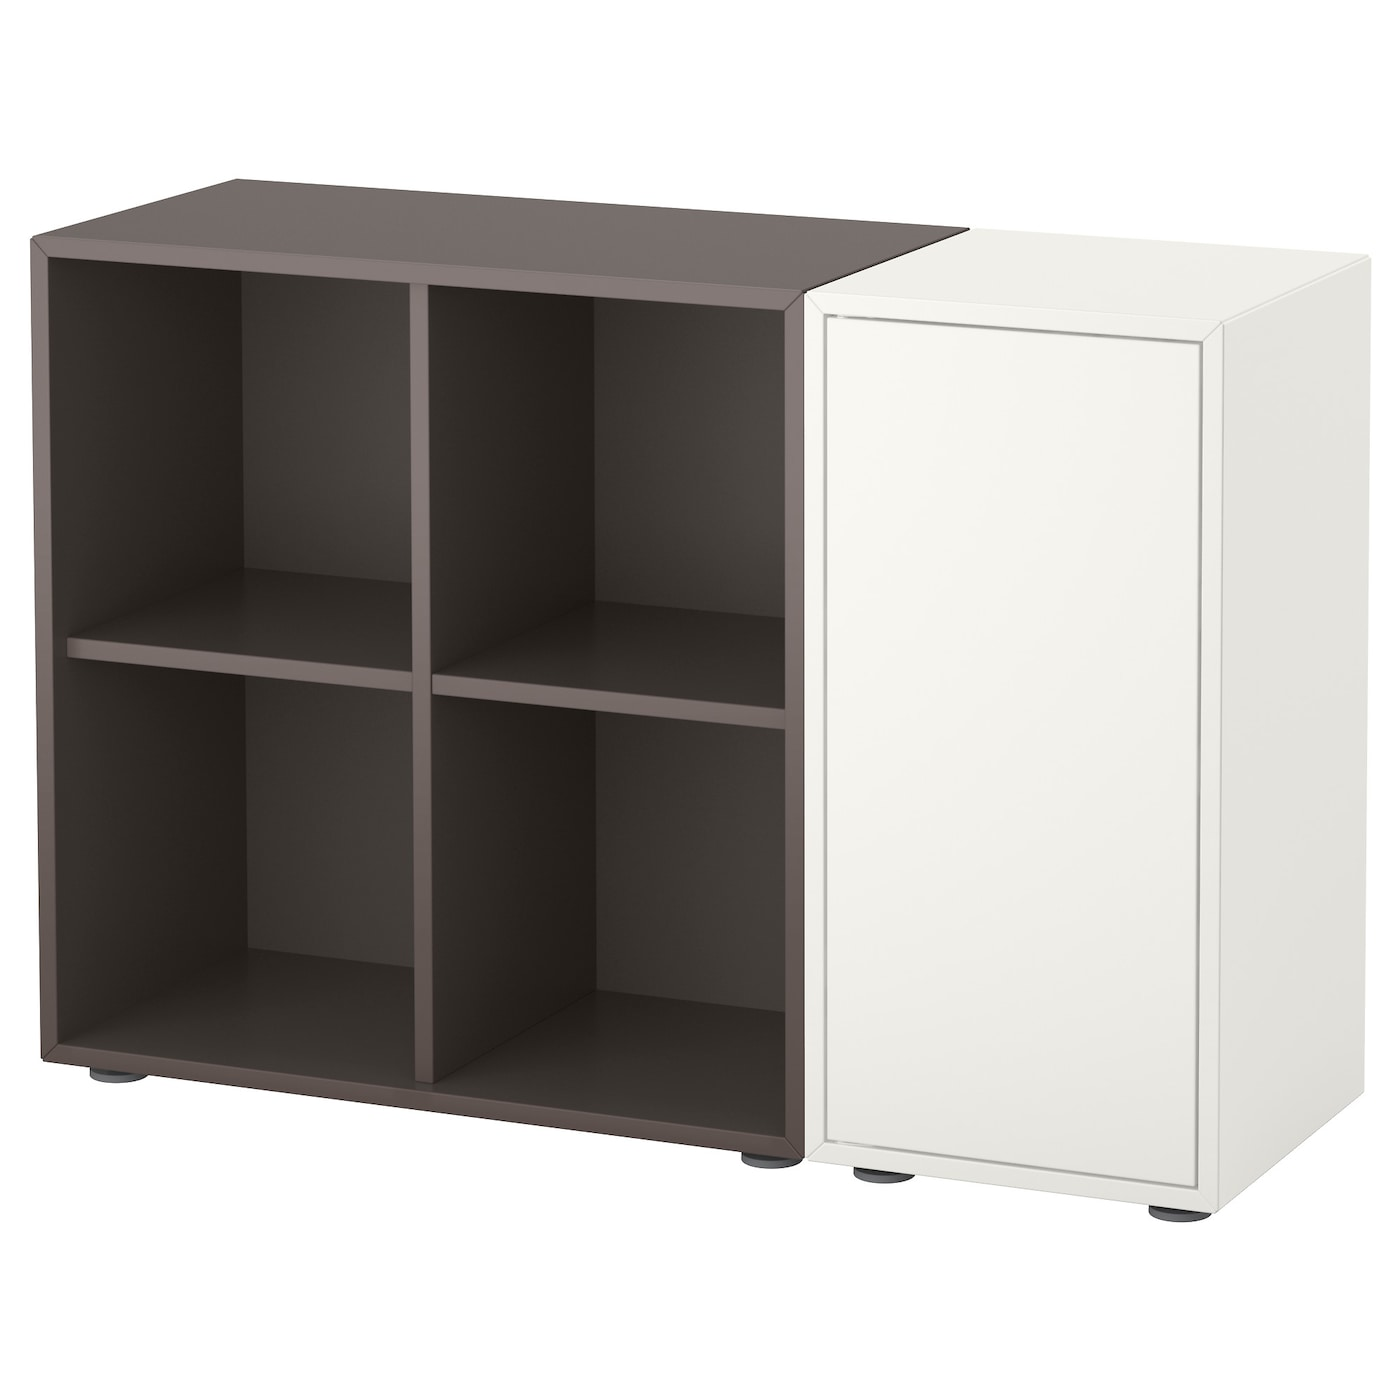 eket cabinet combination with feet white dark grey 105 x 35 x 72 cm ikea. Black Bedroom Furniture Sets. Home Design Ideas